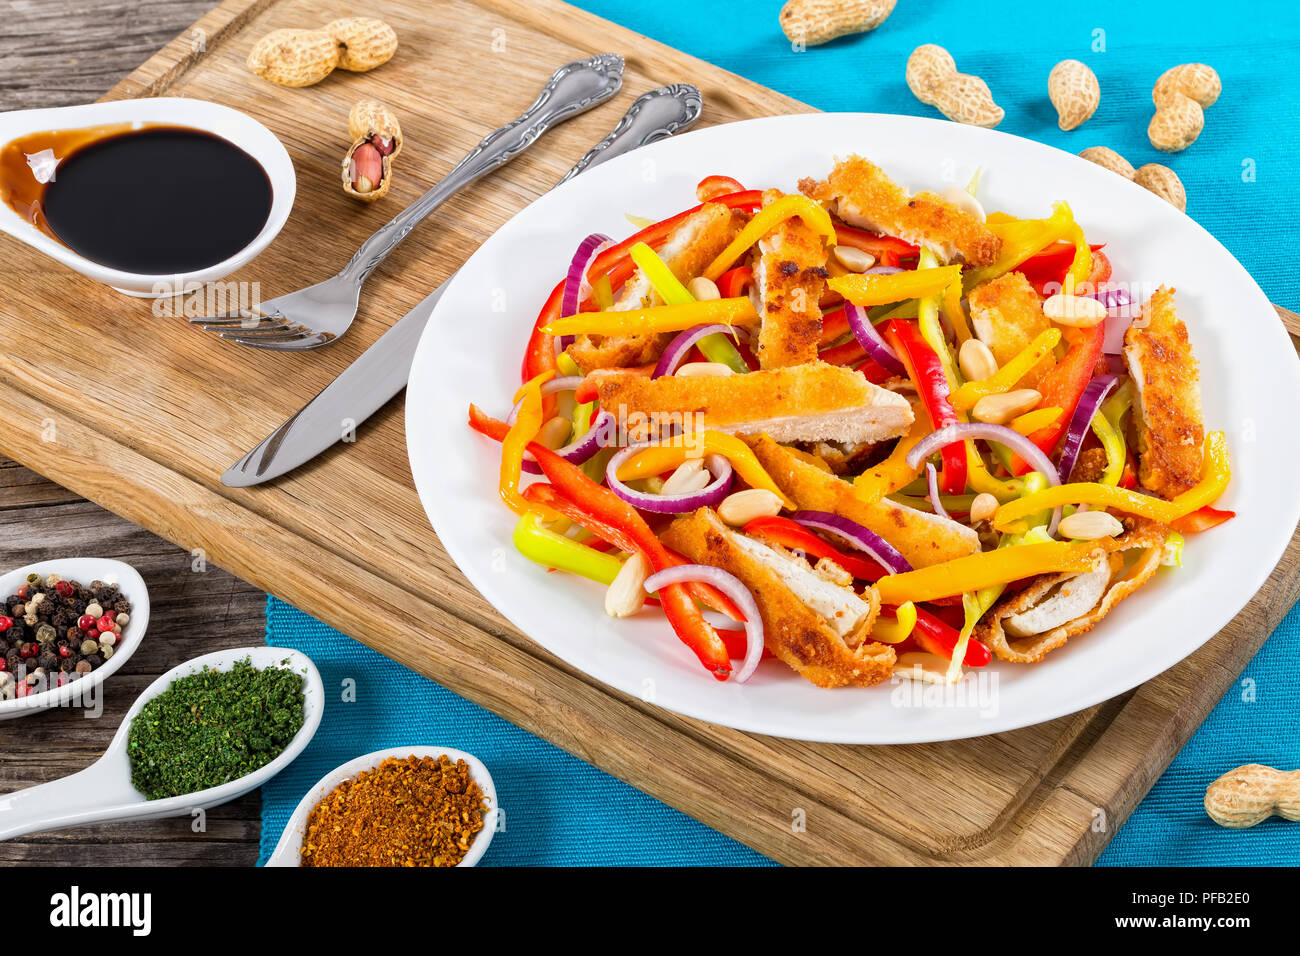 bread crumbed chicken meat, mango, peanuts, bell pepper, red onion salad on white dish with half of  mango cutting in cubes, balsamic vinegar dressing Stock Photo